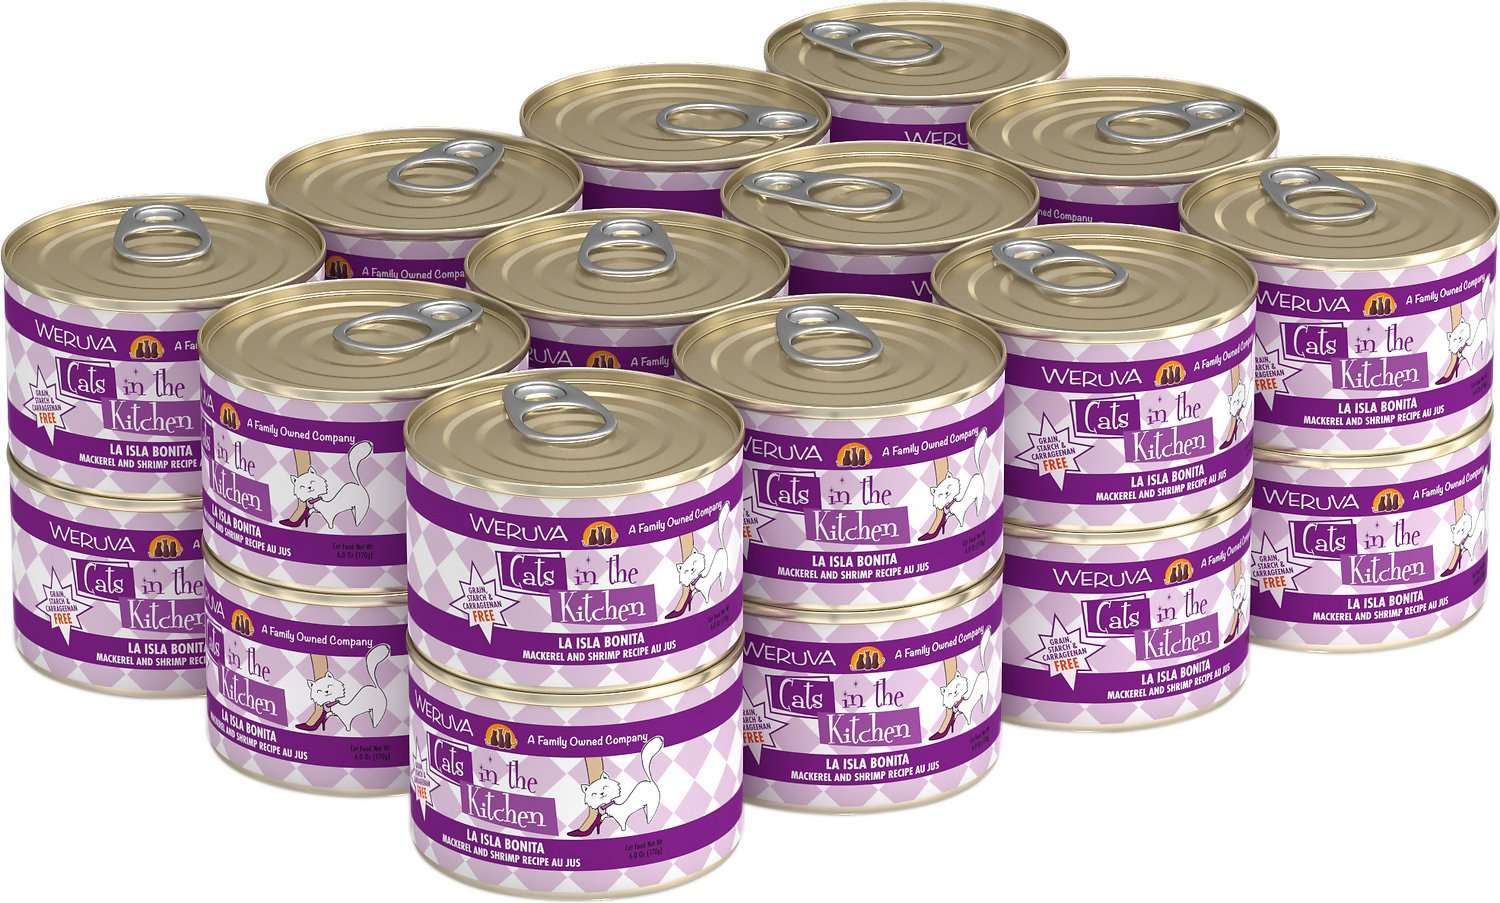 Weruva Cats in the Kitchen La Isla Bonita Mackerel & Shrimp Au Jus Grain-Free Wet Cat Food, 6-oz, case of 24